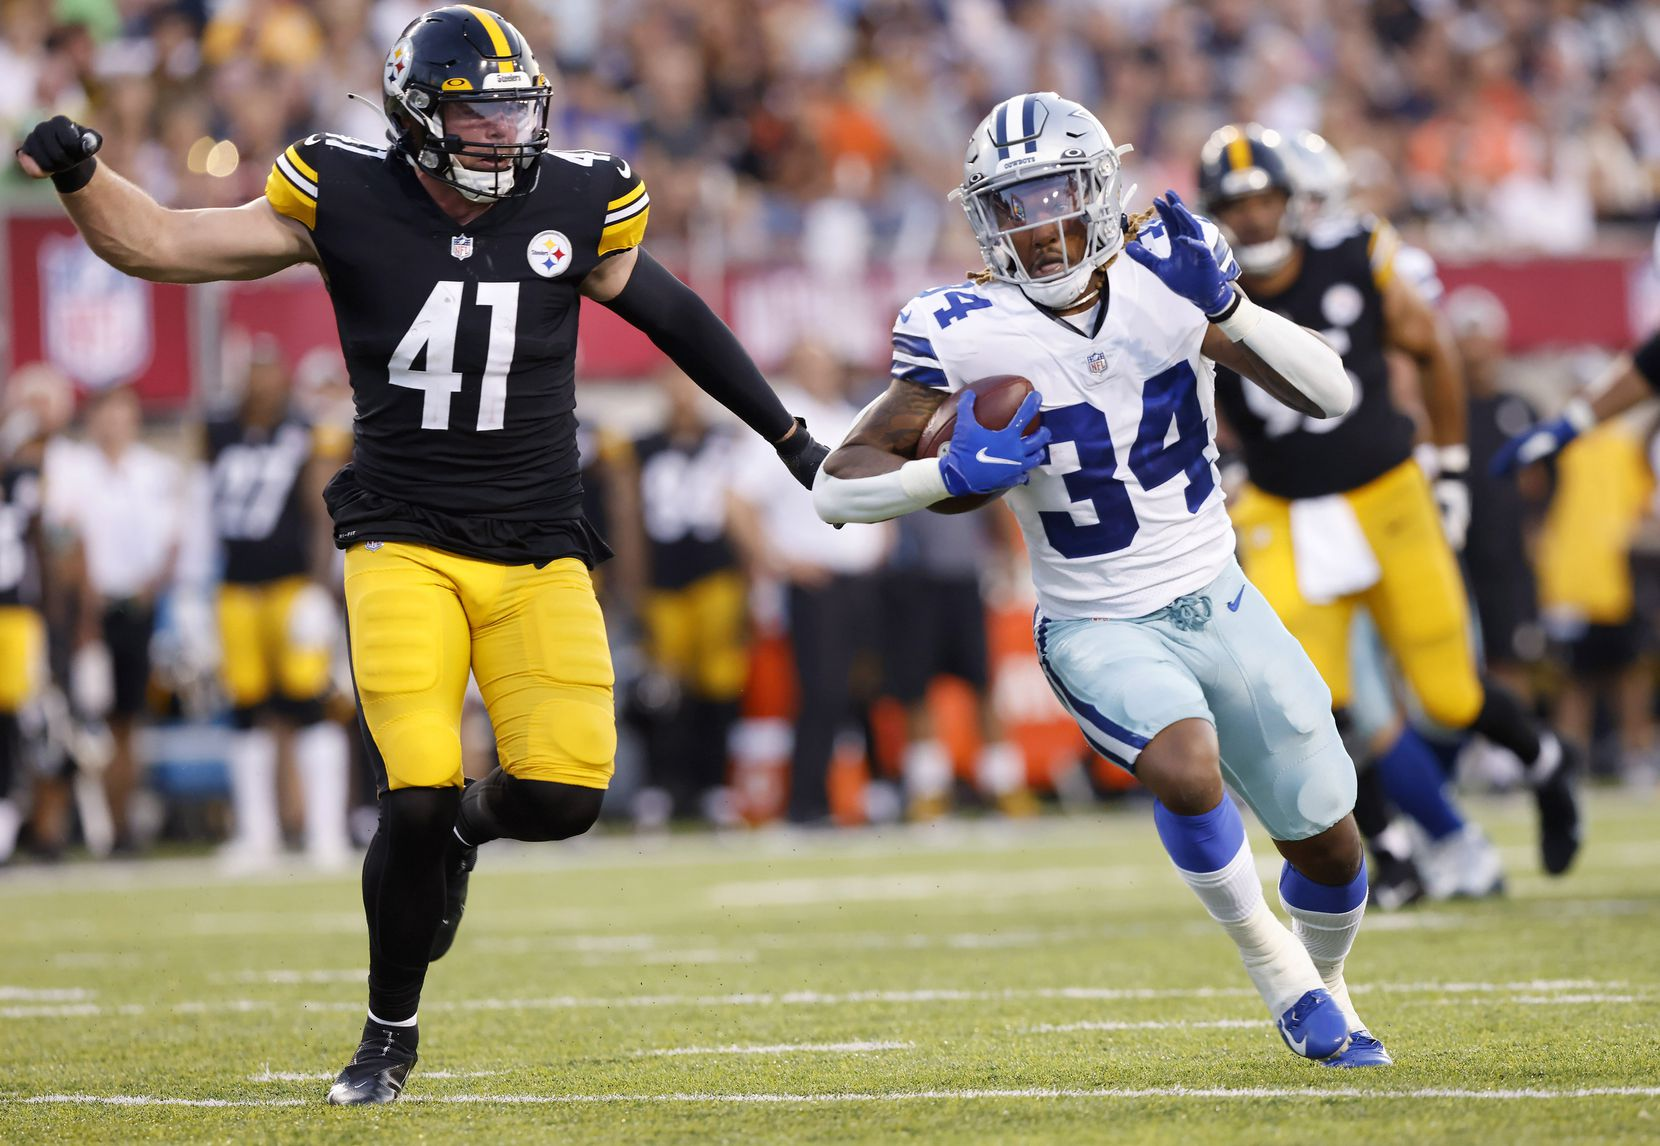 Dallas Cowboys running back Rico Dowdle (34) carries the ball against Pittsburgh Steelers linebacker Robert Spillane during the first quarter of their preseason game at Tom Benson Hall of Fame Stadium in Canton, Ohio, Thursday, August 5, 2021. (Tom Fox/The Dallas Morning News)